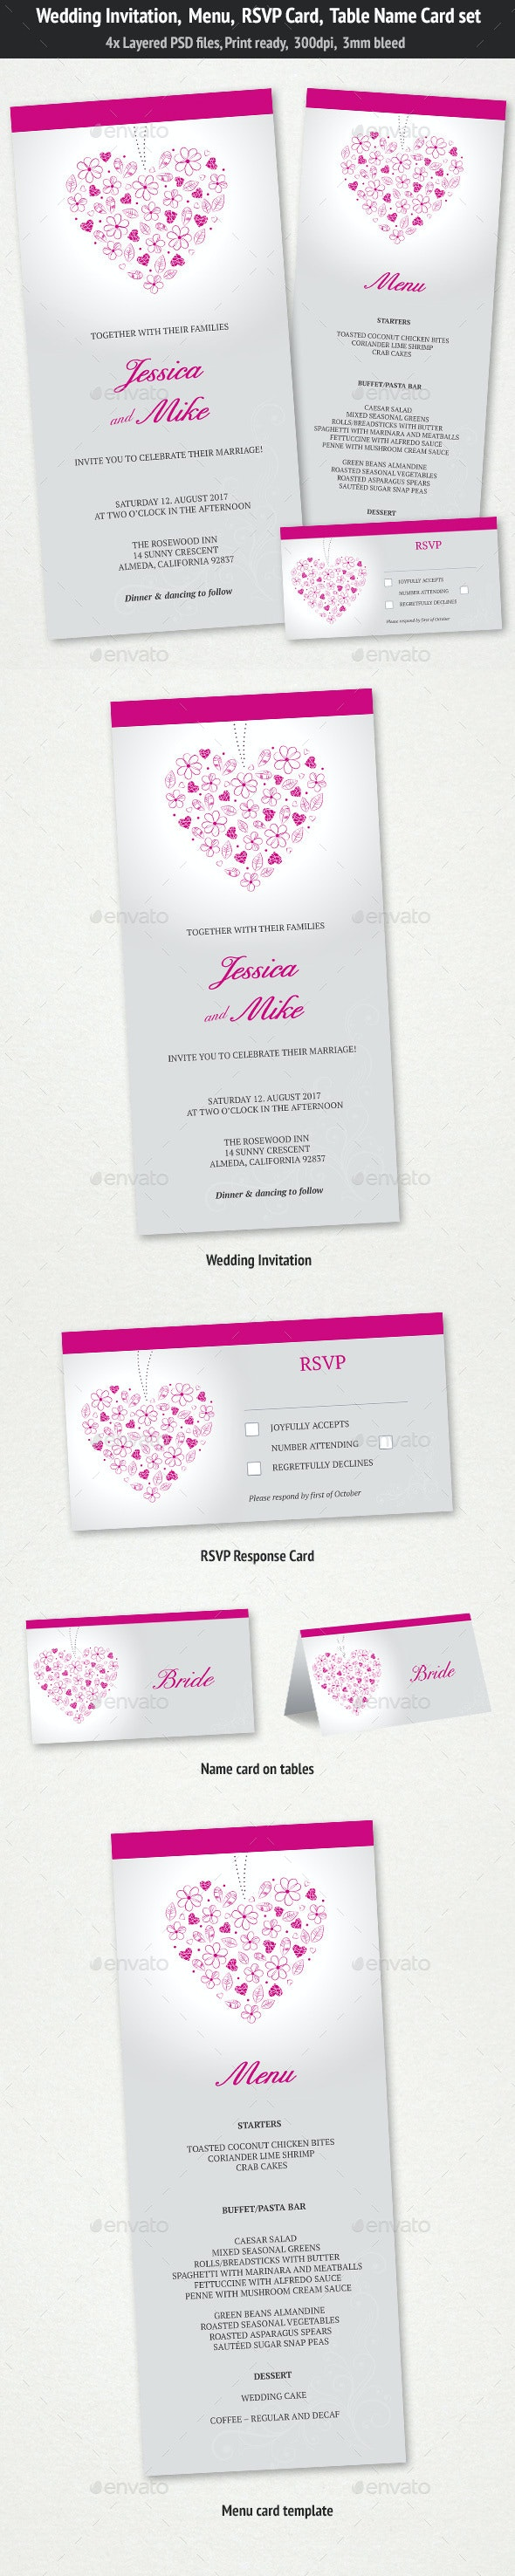 Wedding Invitation, Menu & RSVP Card Set - Weddings Cards & Invites